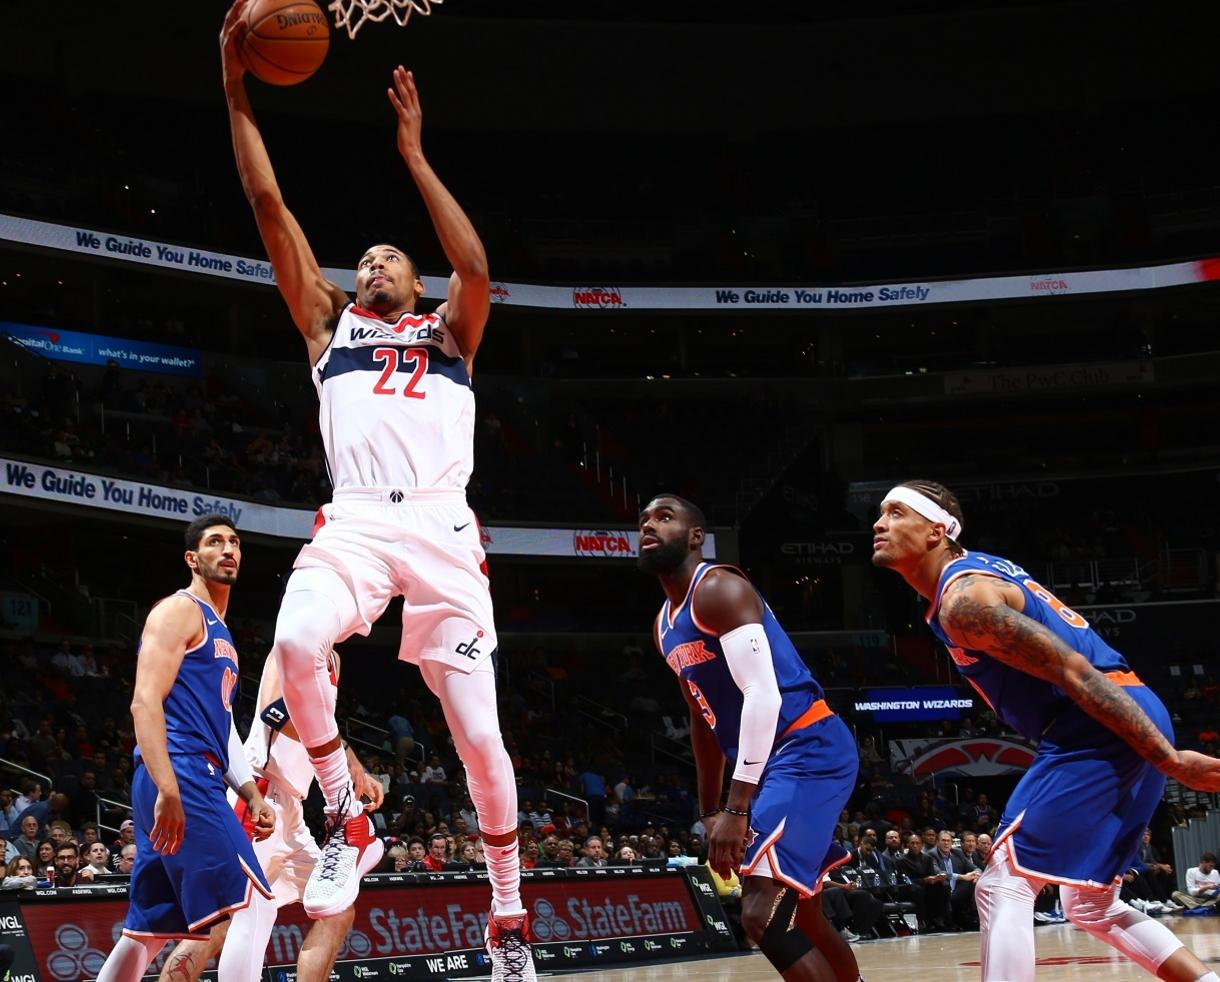 $45+ for Washington Wizards Basketball Game - Includes T-Shirt & Post-Game Free-Throw! (Up to 43% Off)